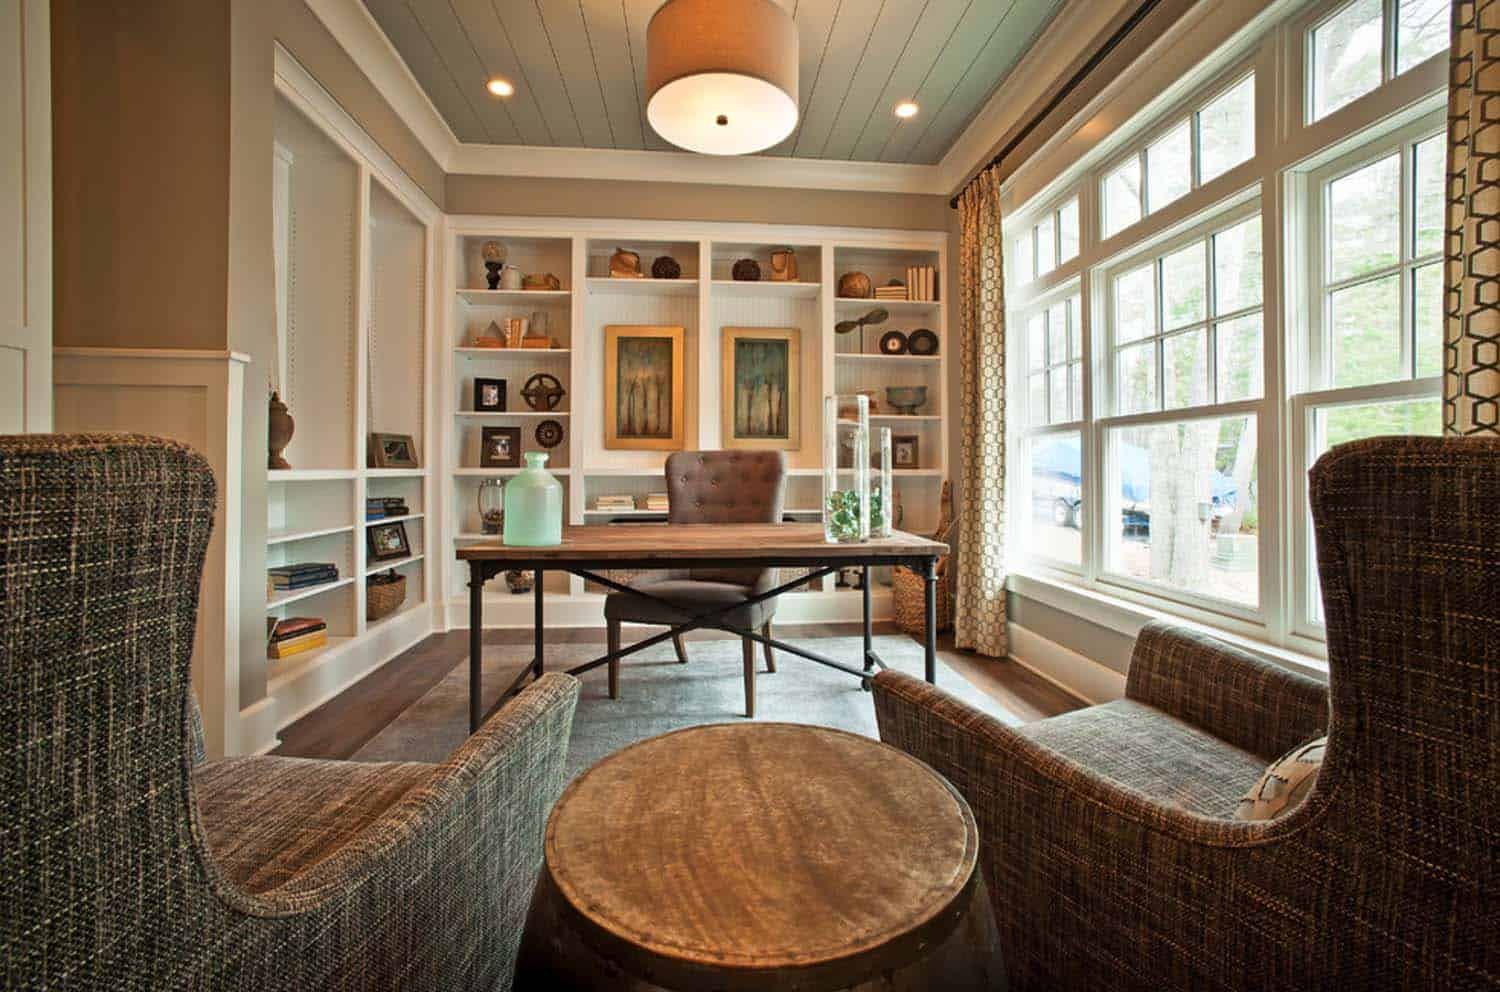 grand-traverse-bay-home-kp-designs-18-1-kindesign